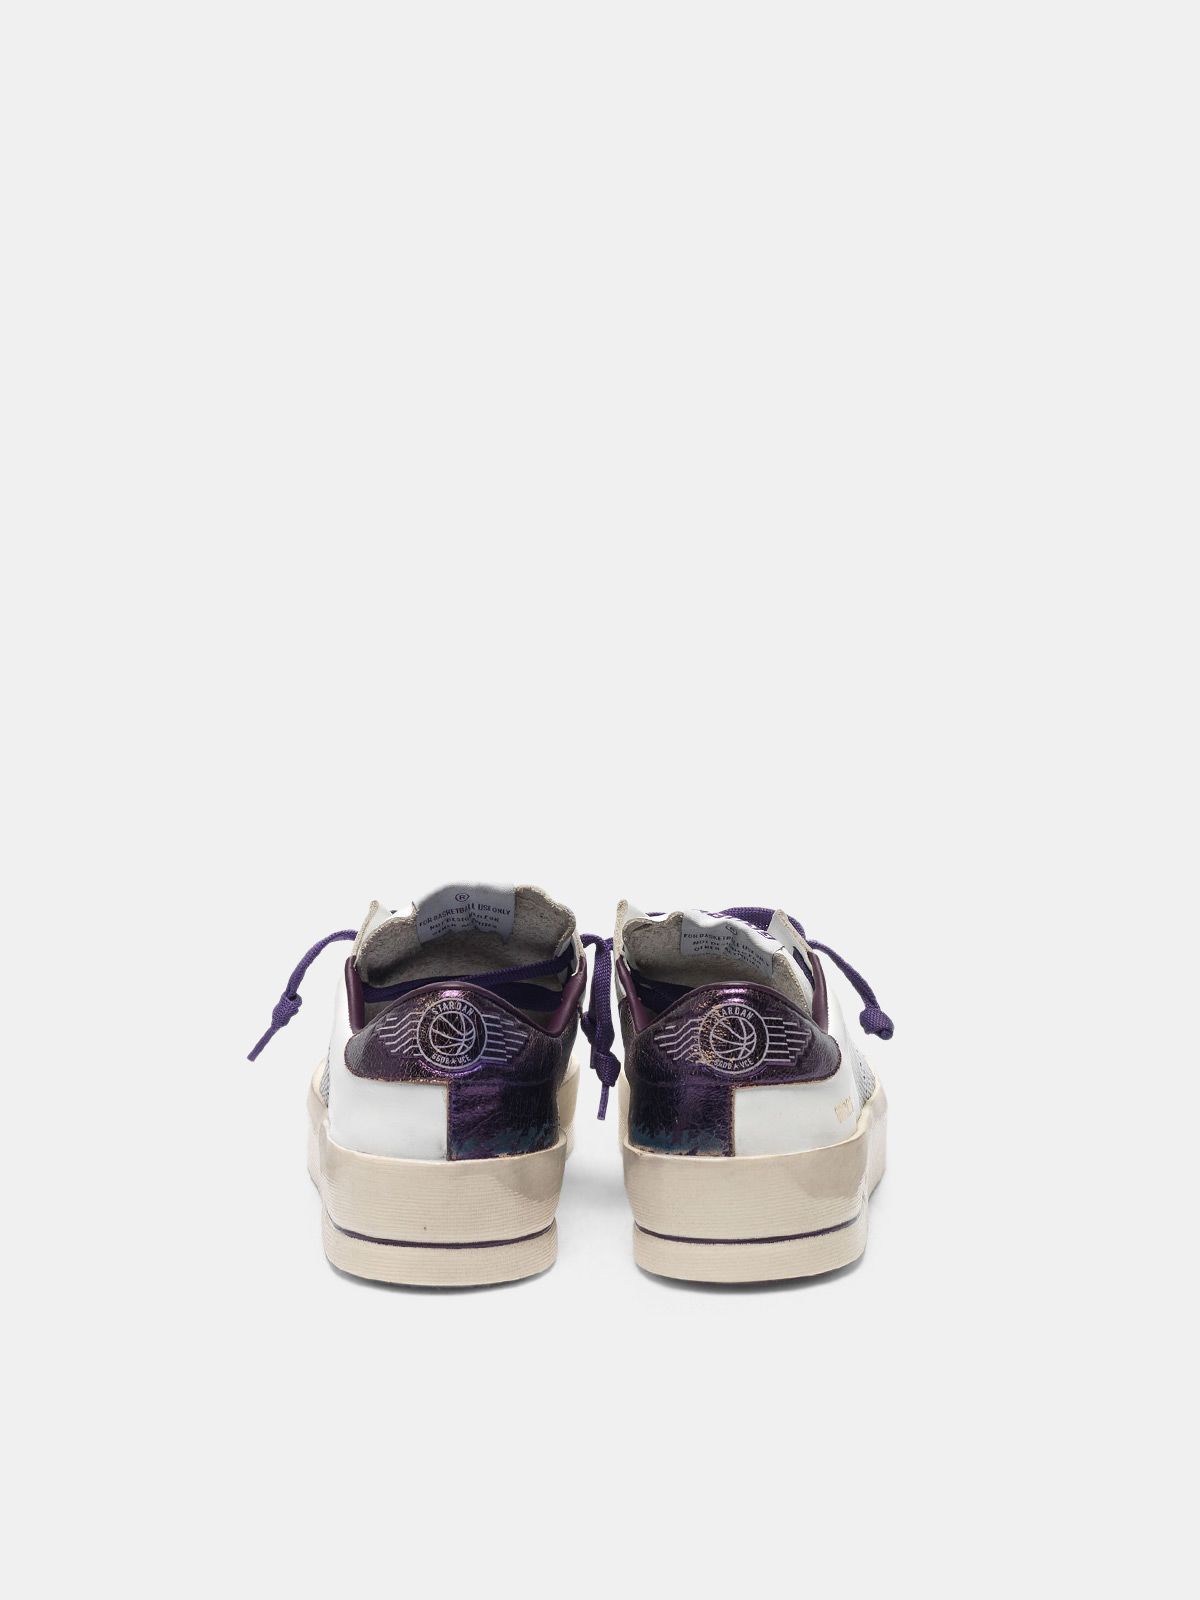 Golden Goose - Stardan sneakers with star and heel tab in metallic purple  in